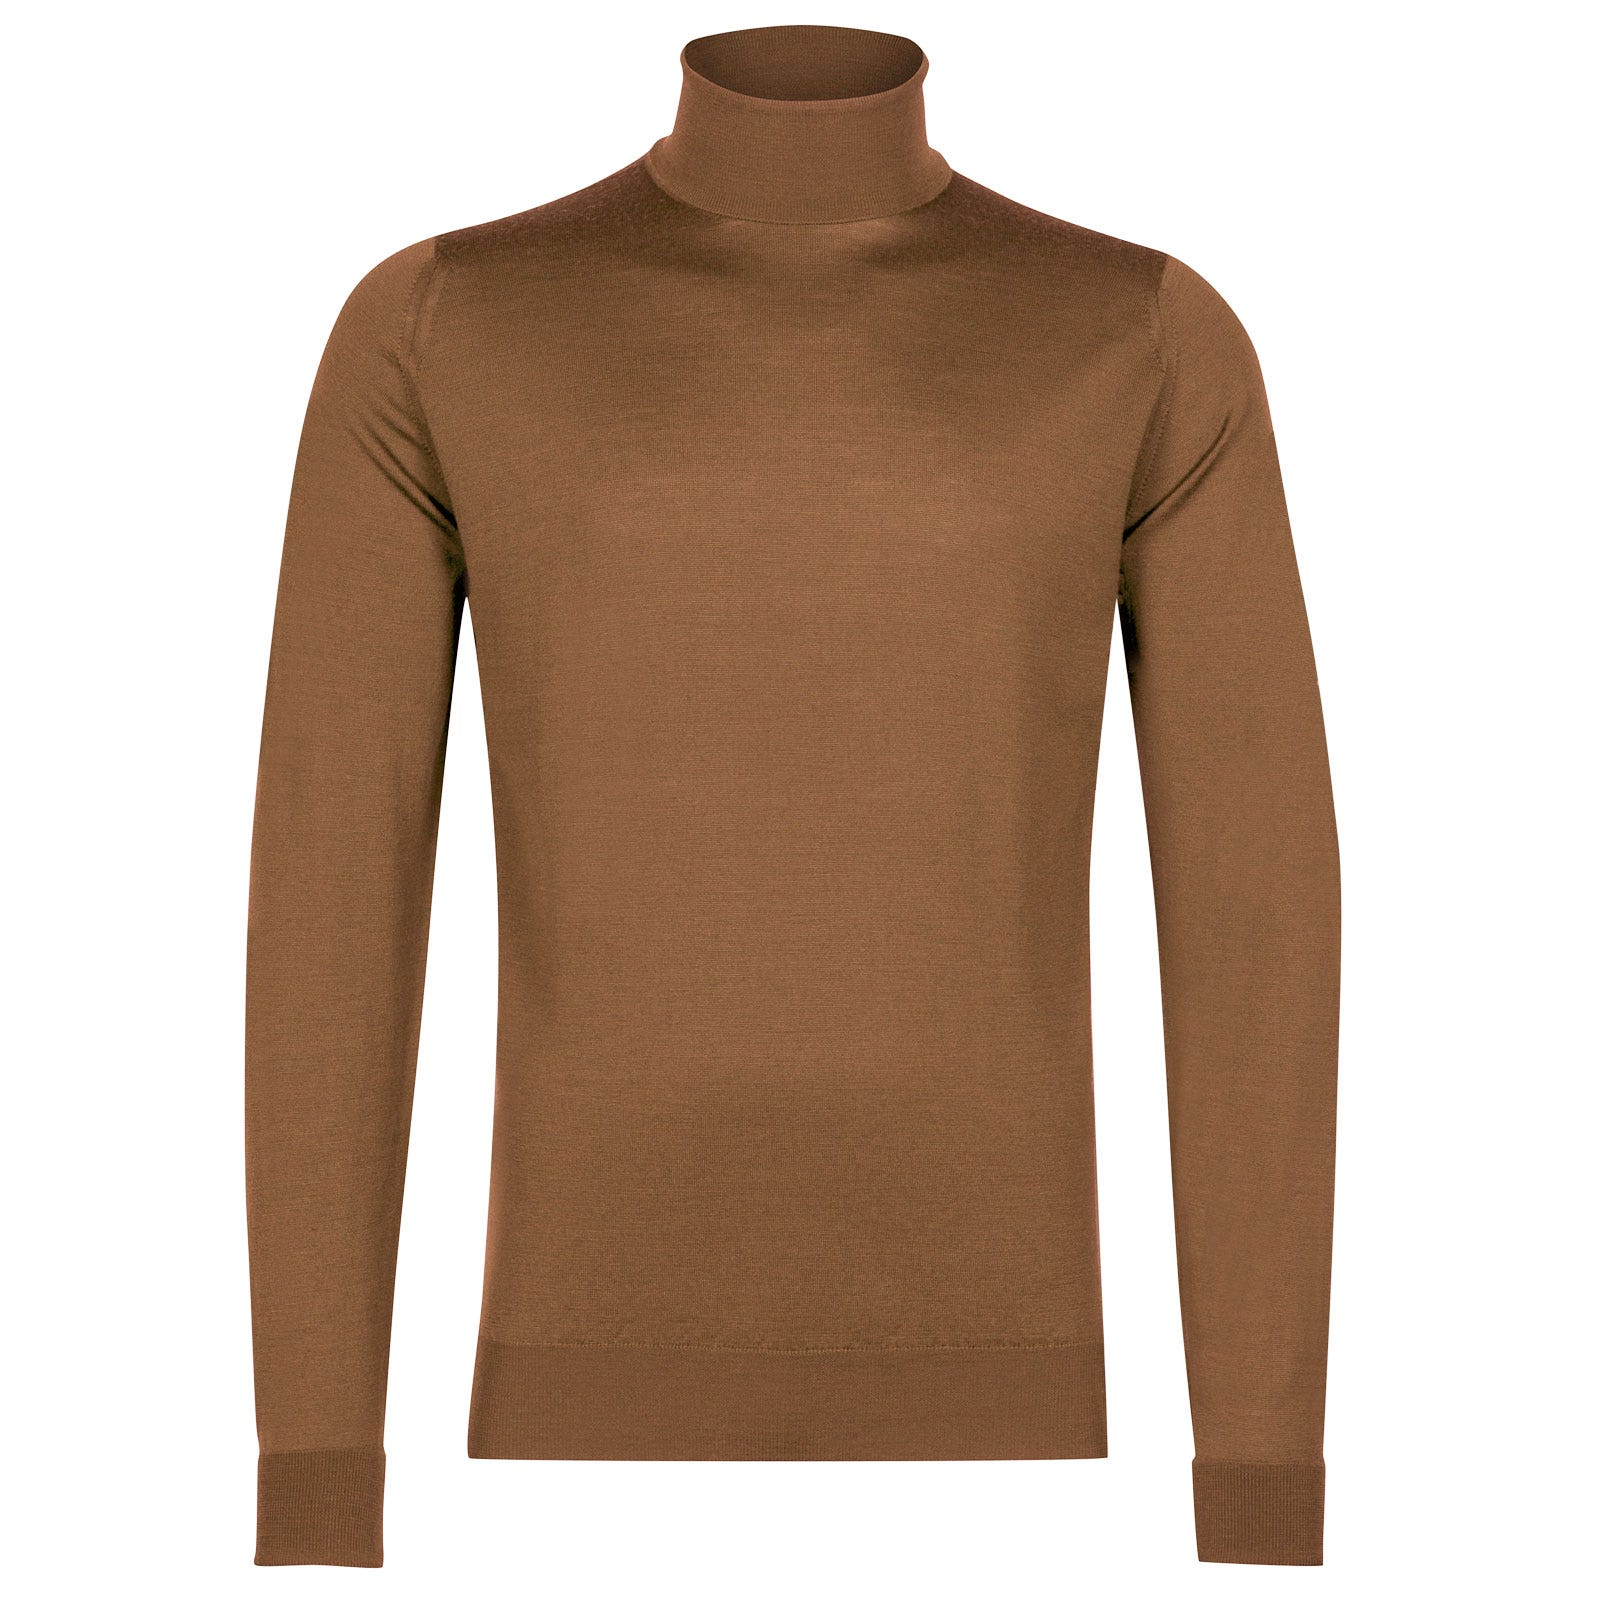 John Smedley richards Merino Wool Pullover in Camel-XL